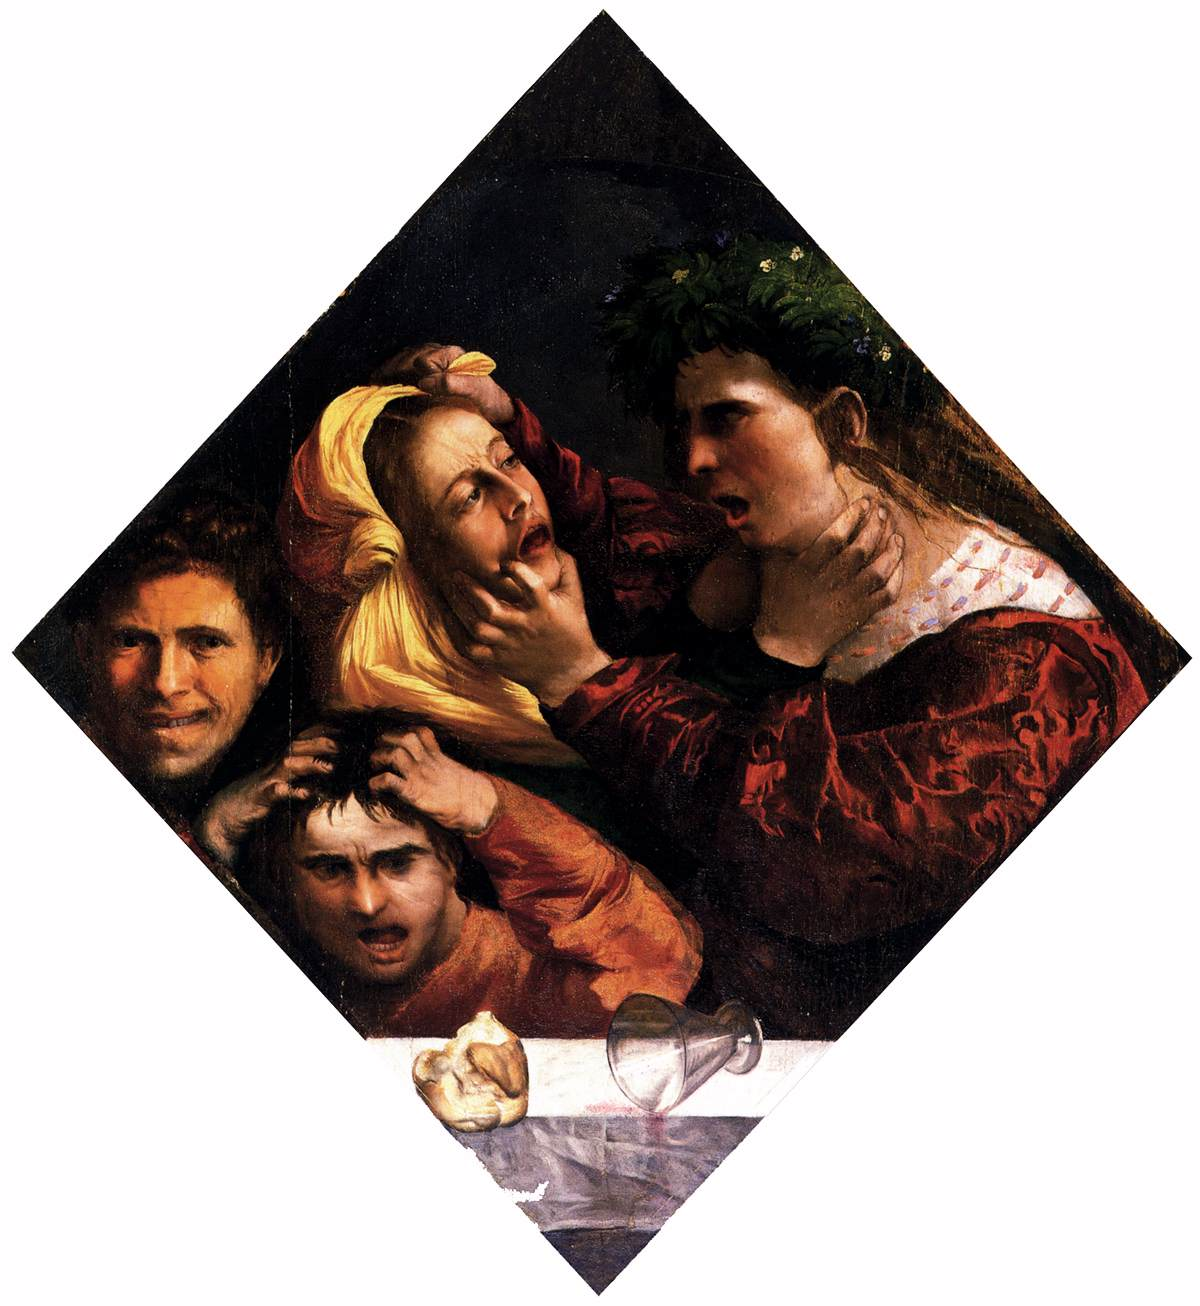 Dosso Dossi [Public domain], via Wikimedia Commons